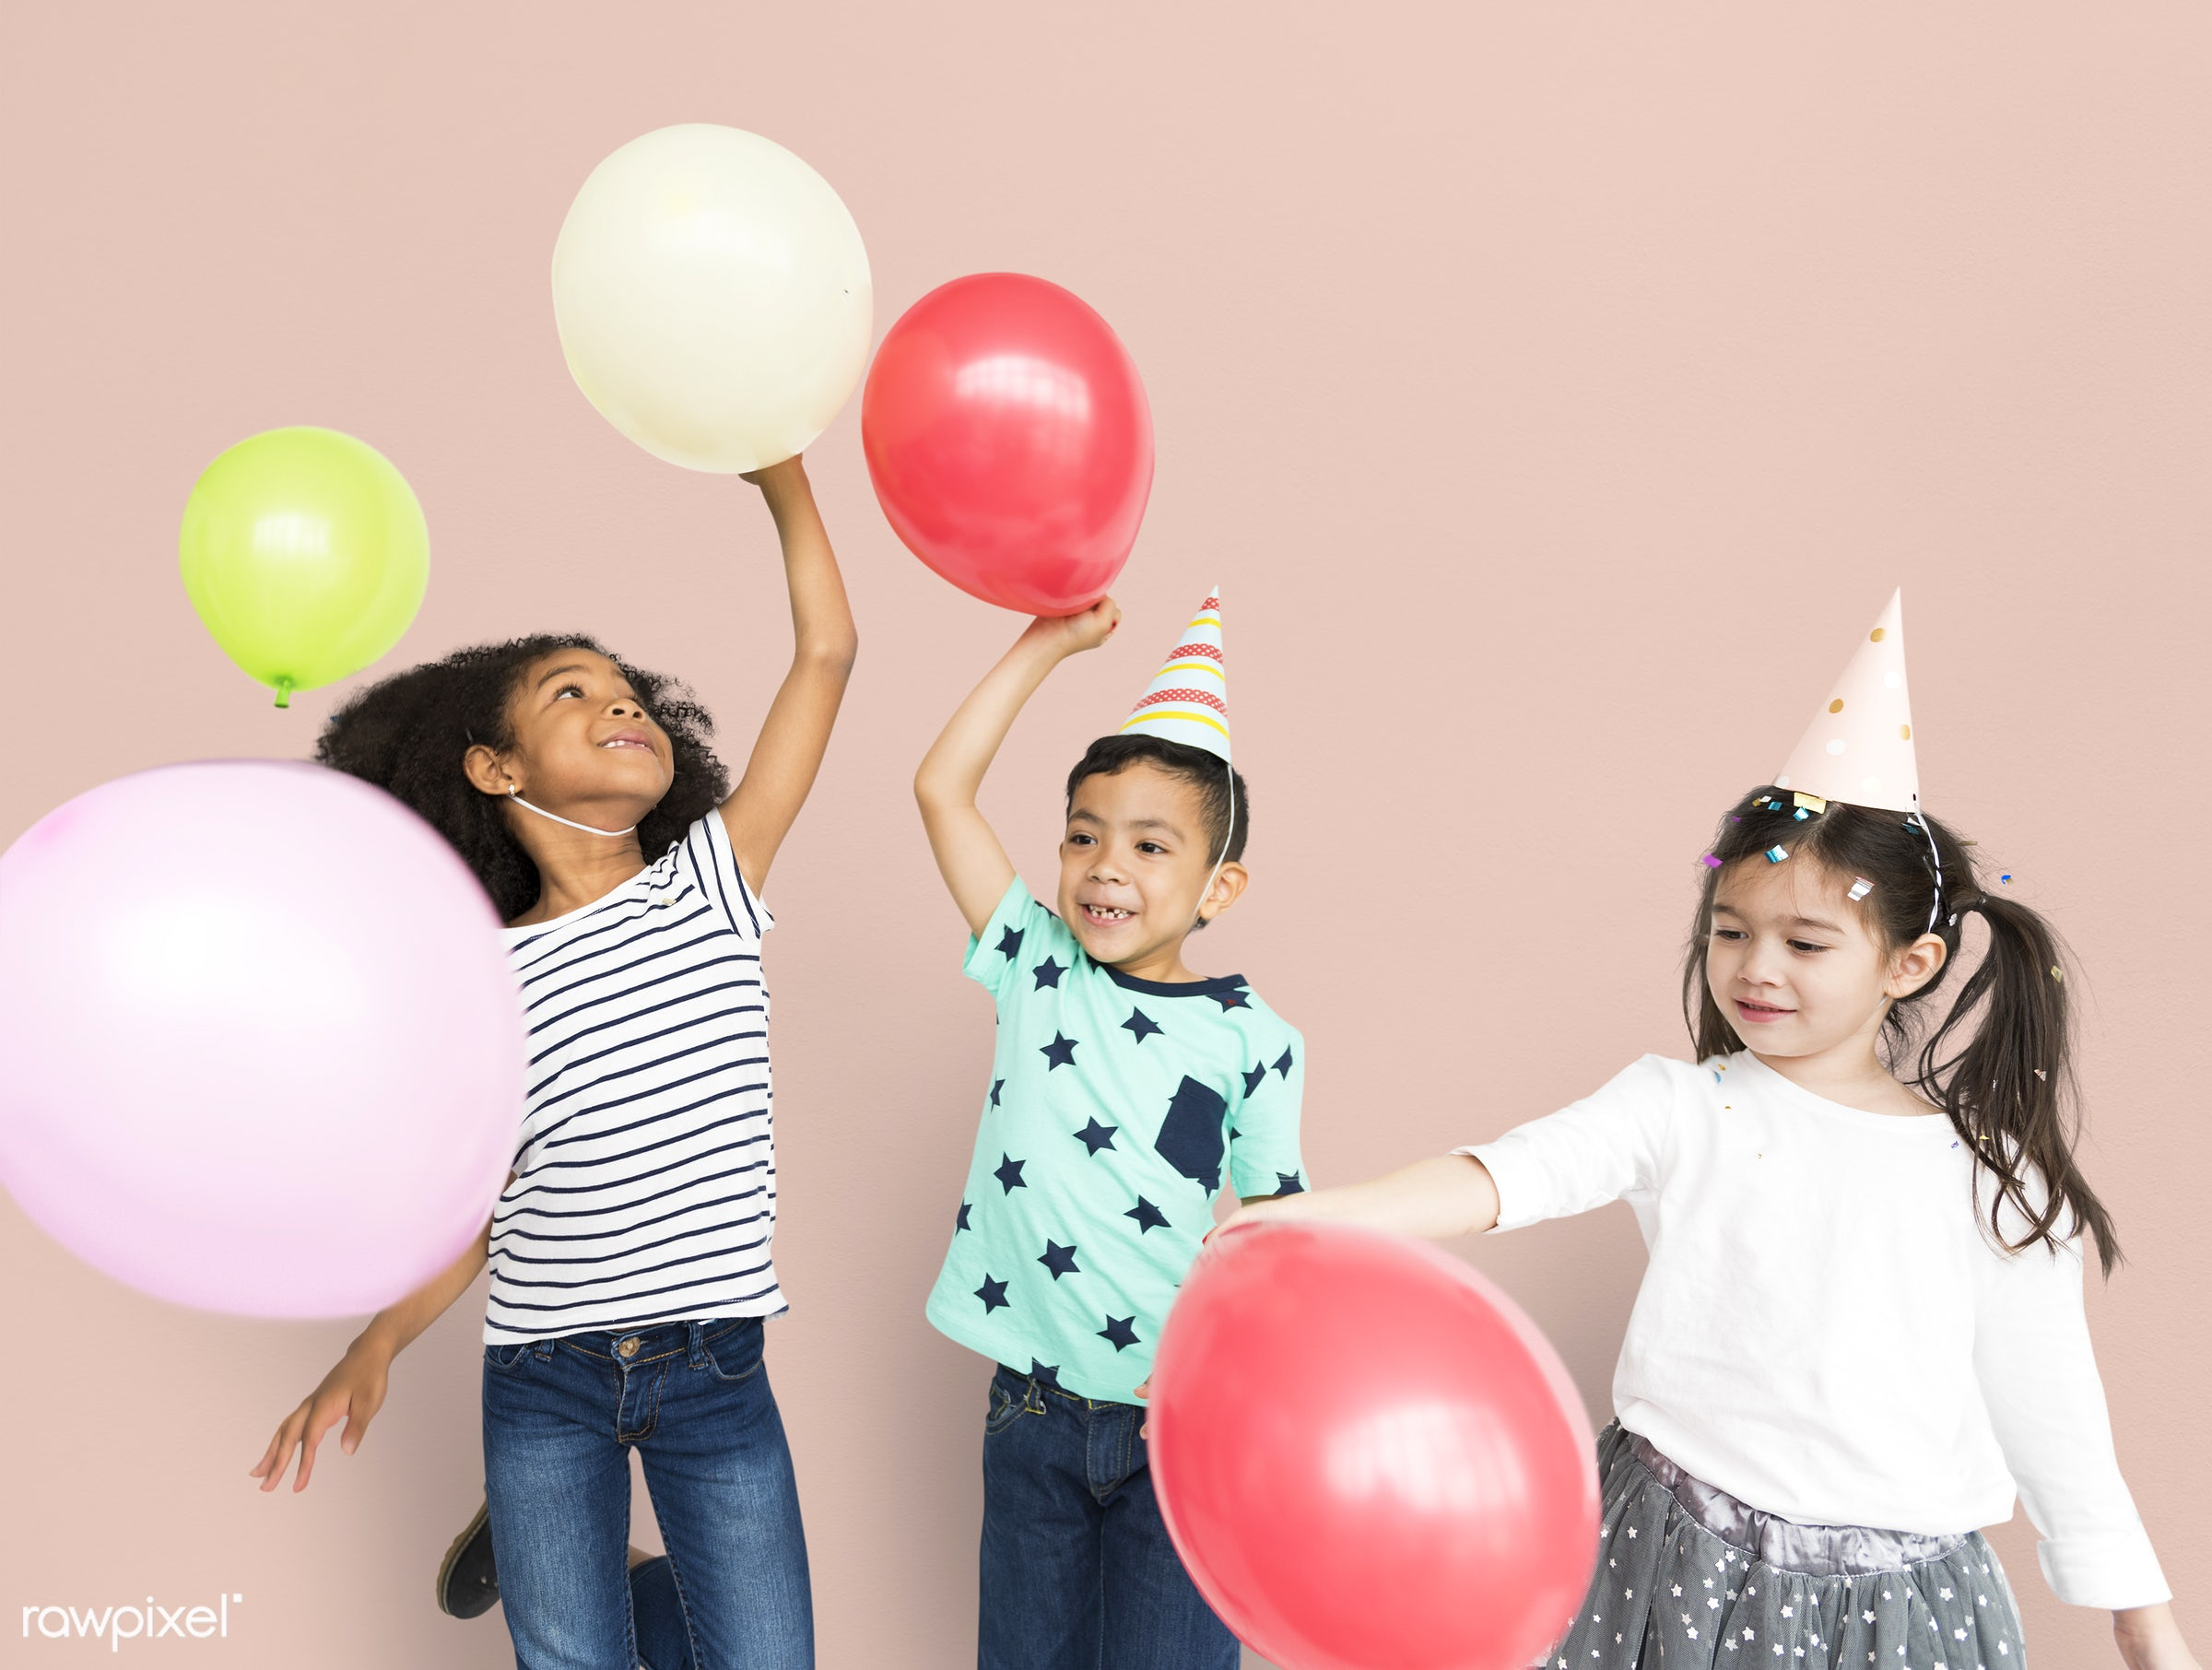 balloons, playing, party, fun, happiness, hat, cheerful, child, children, diversity, friends, friendship, group, isolated,...